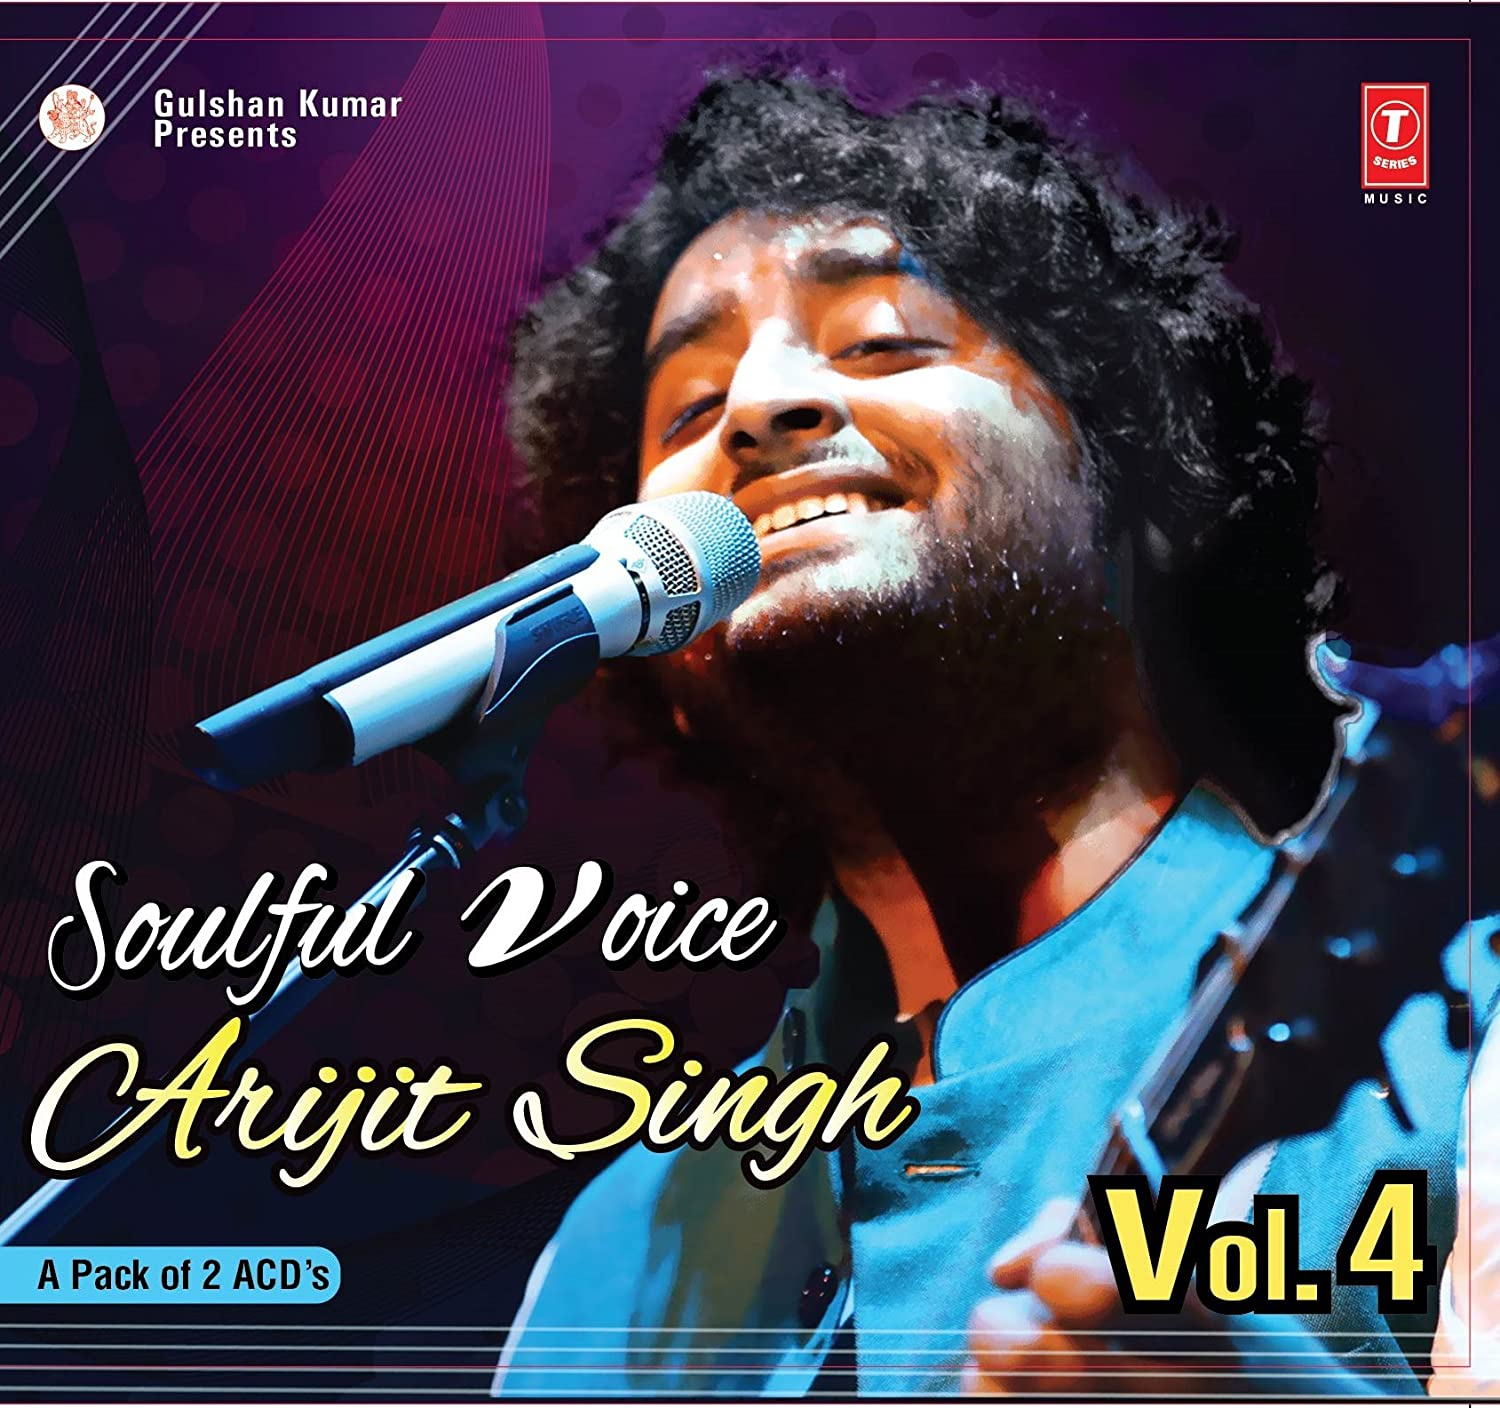 Soulful Voice Arijit Singh Vol 4 Latest Hindi Songs 2 Cd Pack Amazon Com Music #haibaaki by #arijitsingh is the type of song which rarely comes. soulful voice arijit singh vol 4 latest